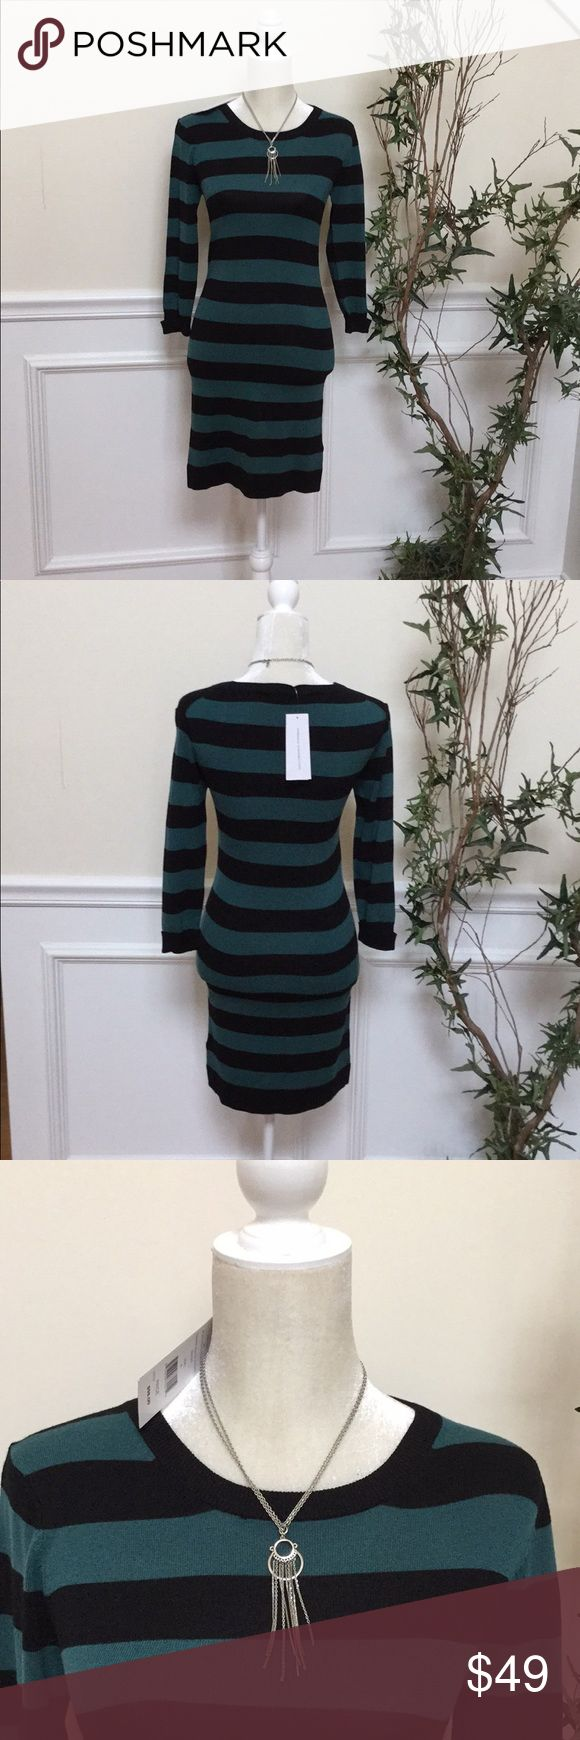 FRENCH CONNECTION BLACK/TEAL KNITES STRIPE DRESS 6 BEAUTIFUL FRENCH CONNECTION BLACK/TEAL KNITES STRIPE DRESS 6  ✨Buy before it sells out✨ NO TRADES! NO HOLDS!  ALL OF MY ITEMS COME FROM SMOKE FREE, AND PET FREE HOME. French Connection Dresses Long Sleeve #fitnessconnection,